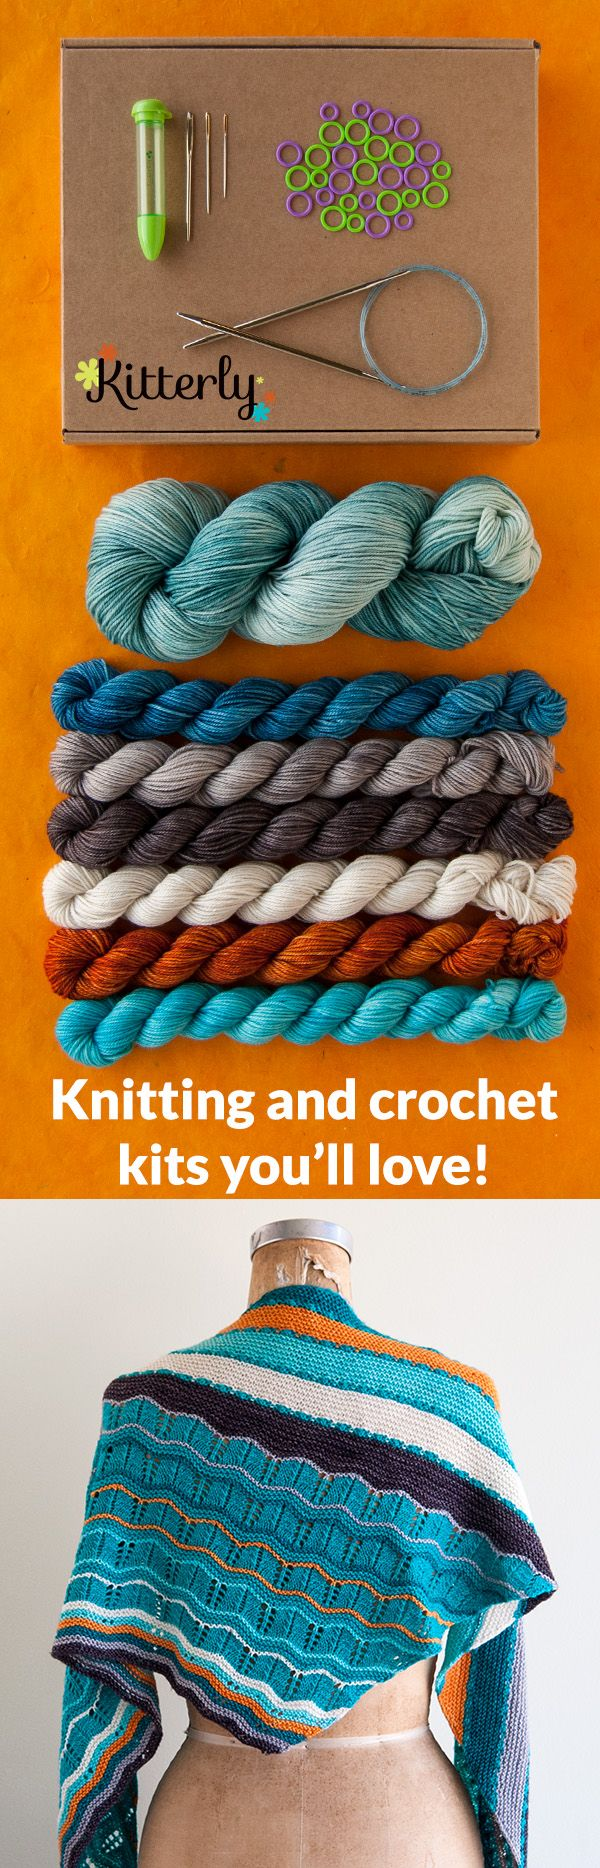 Craft Supply Shopping Made Simple! Shop Kitterly for Knitting & Crochet Kits to Make ANYTHING